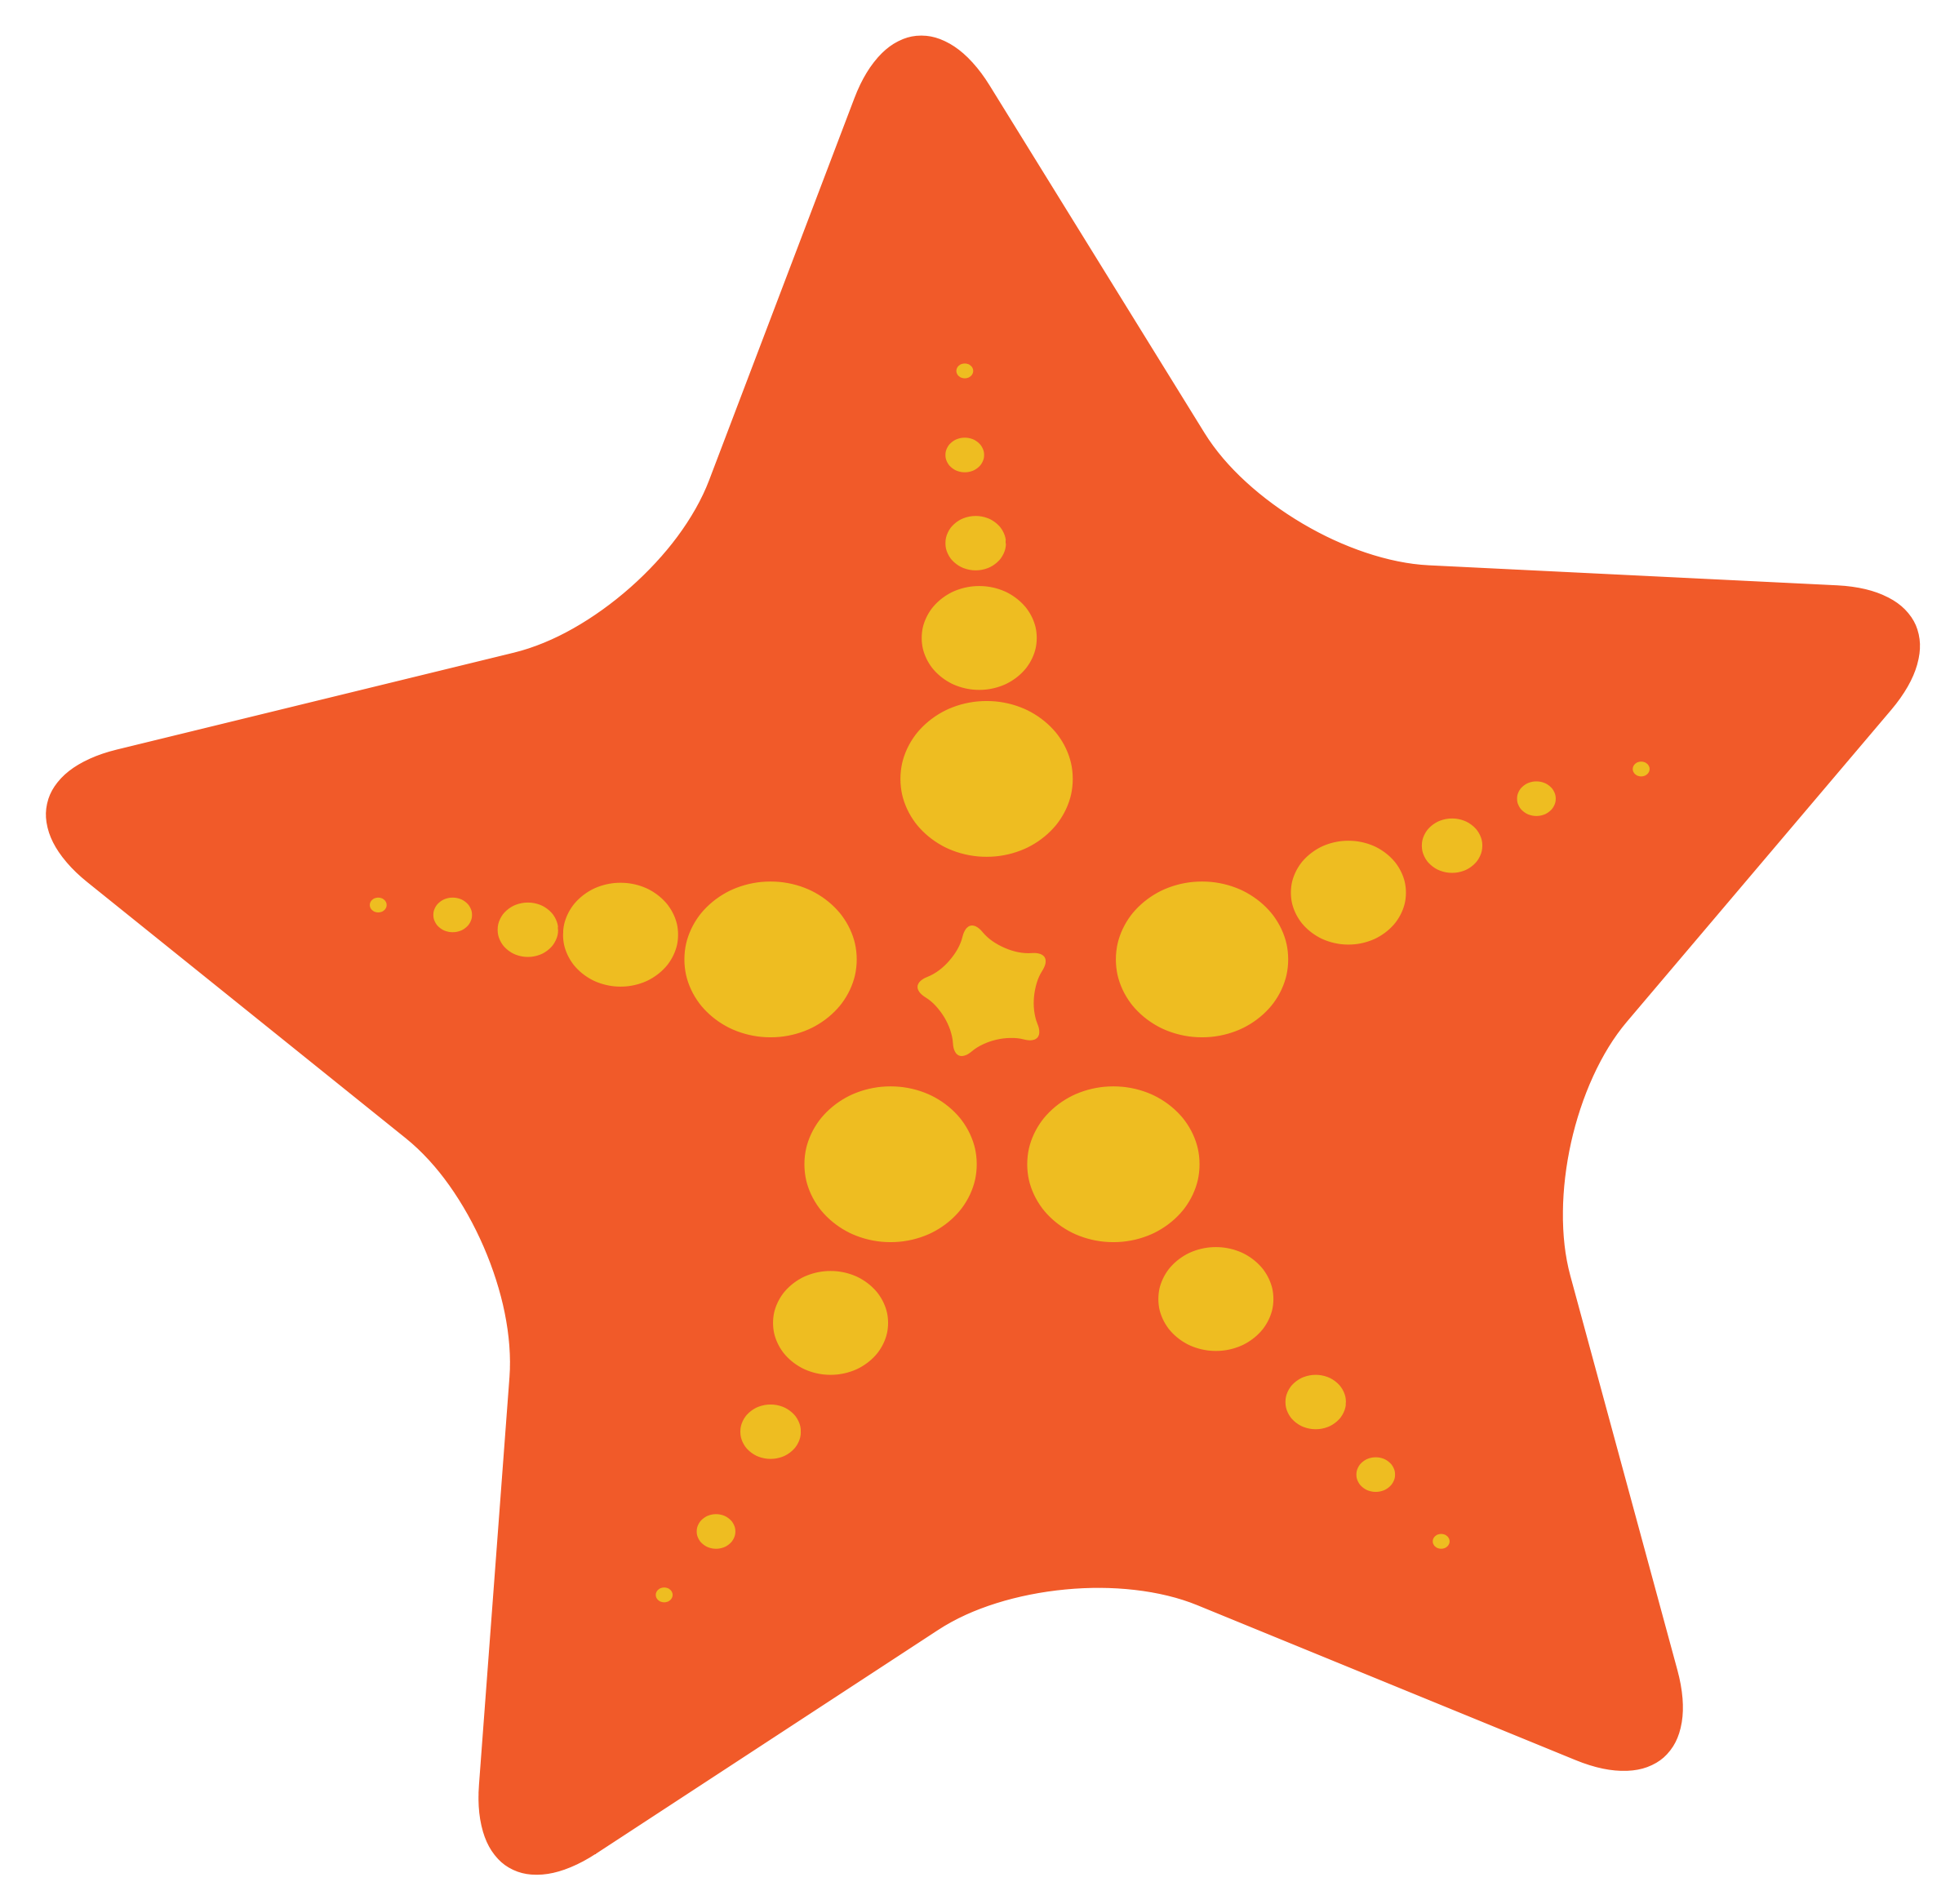 Cute starfish clipart free images 3